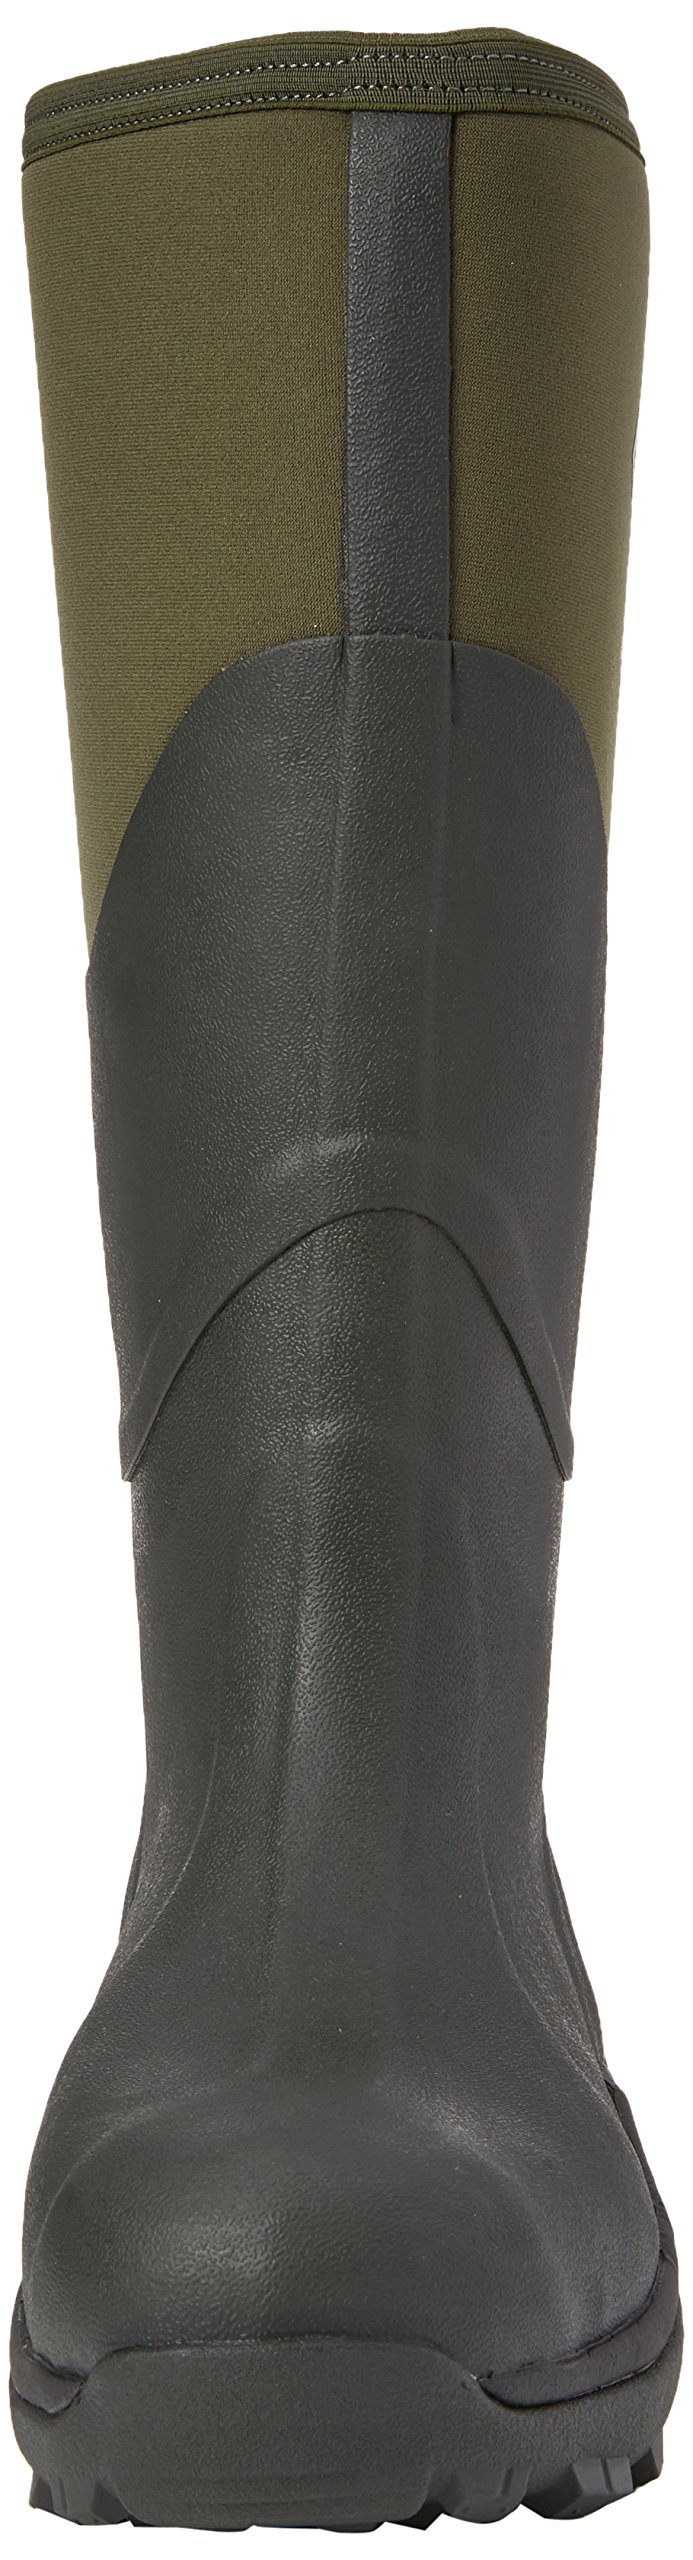 Muck Mens Muckmaster Green Textile Boots 9 US by Muck Boot (Image #4)